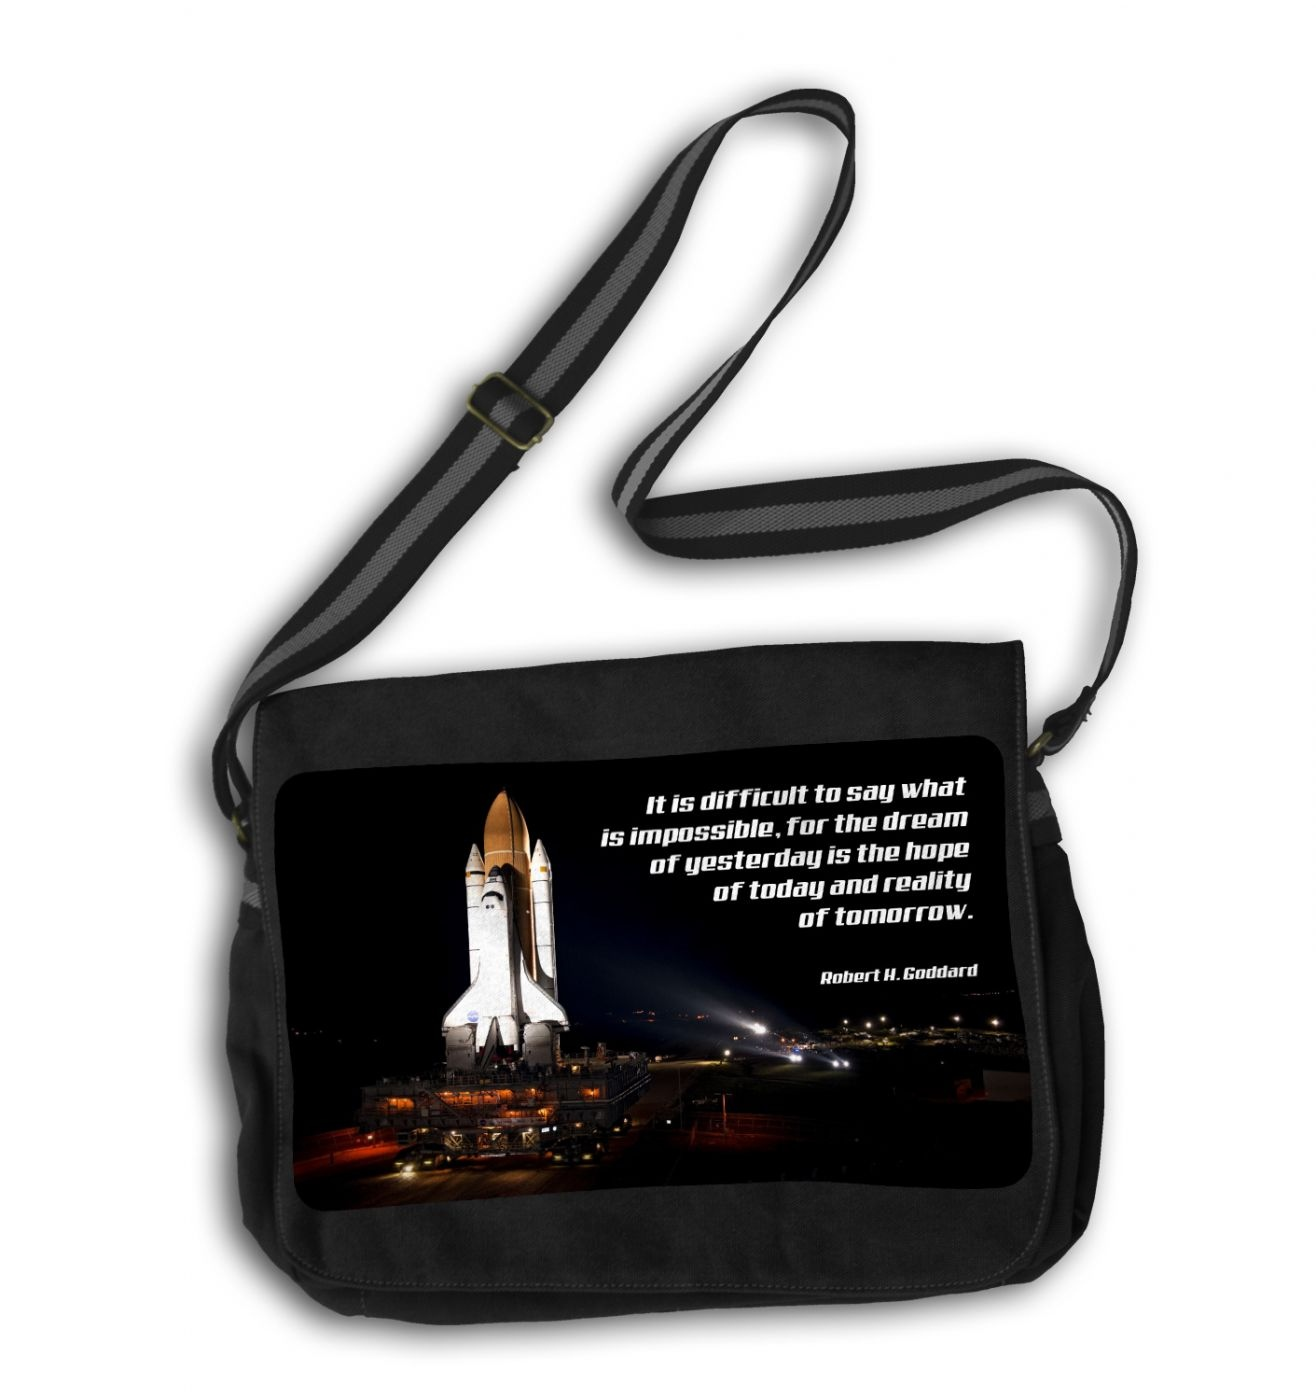 Space Shuttle messenger bag - geeky school bag